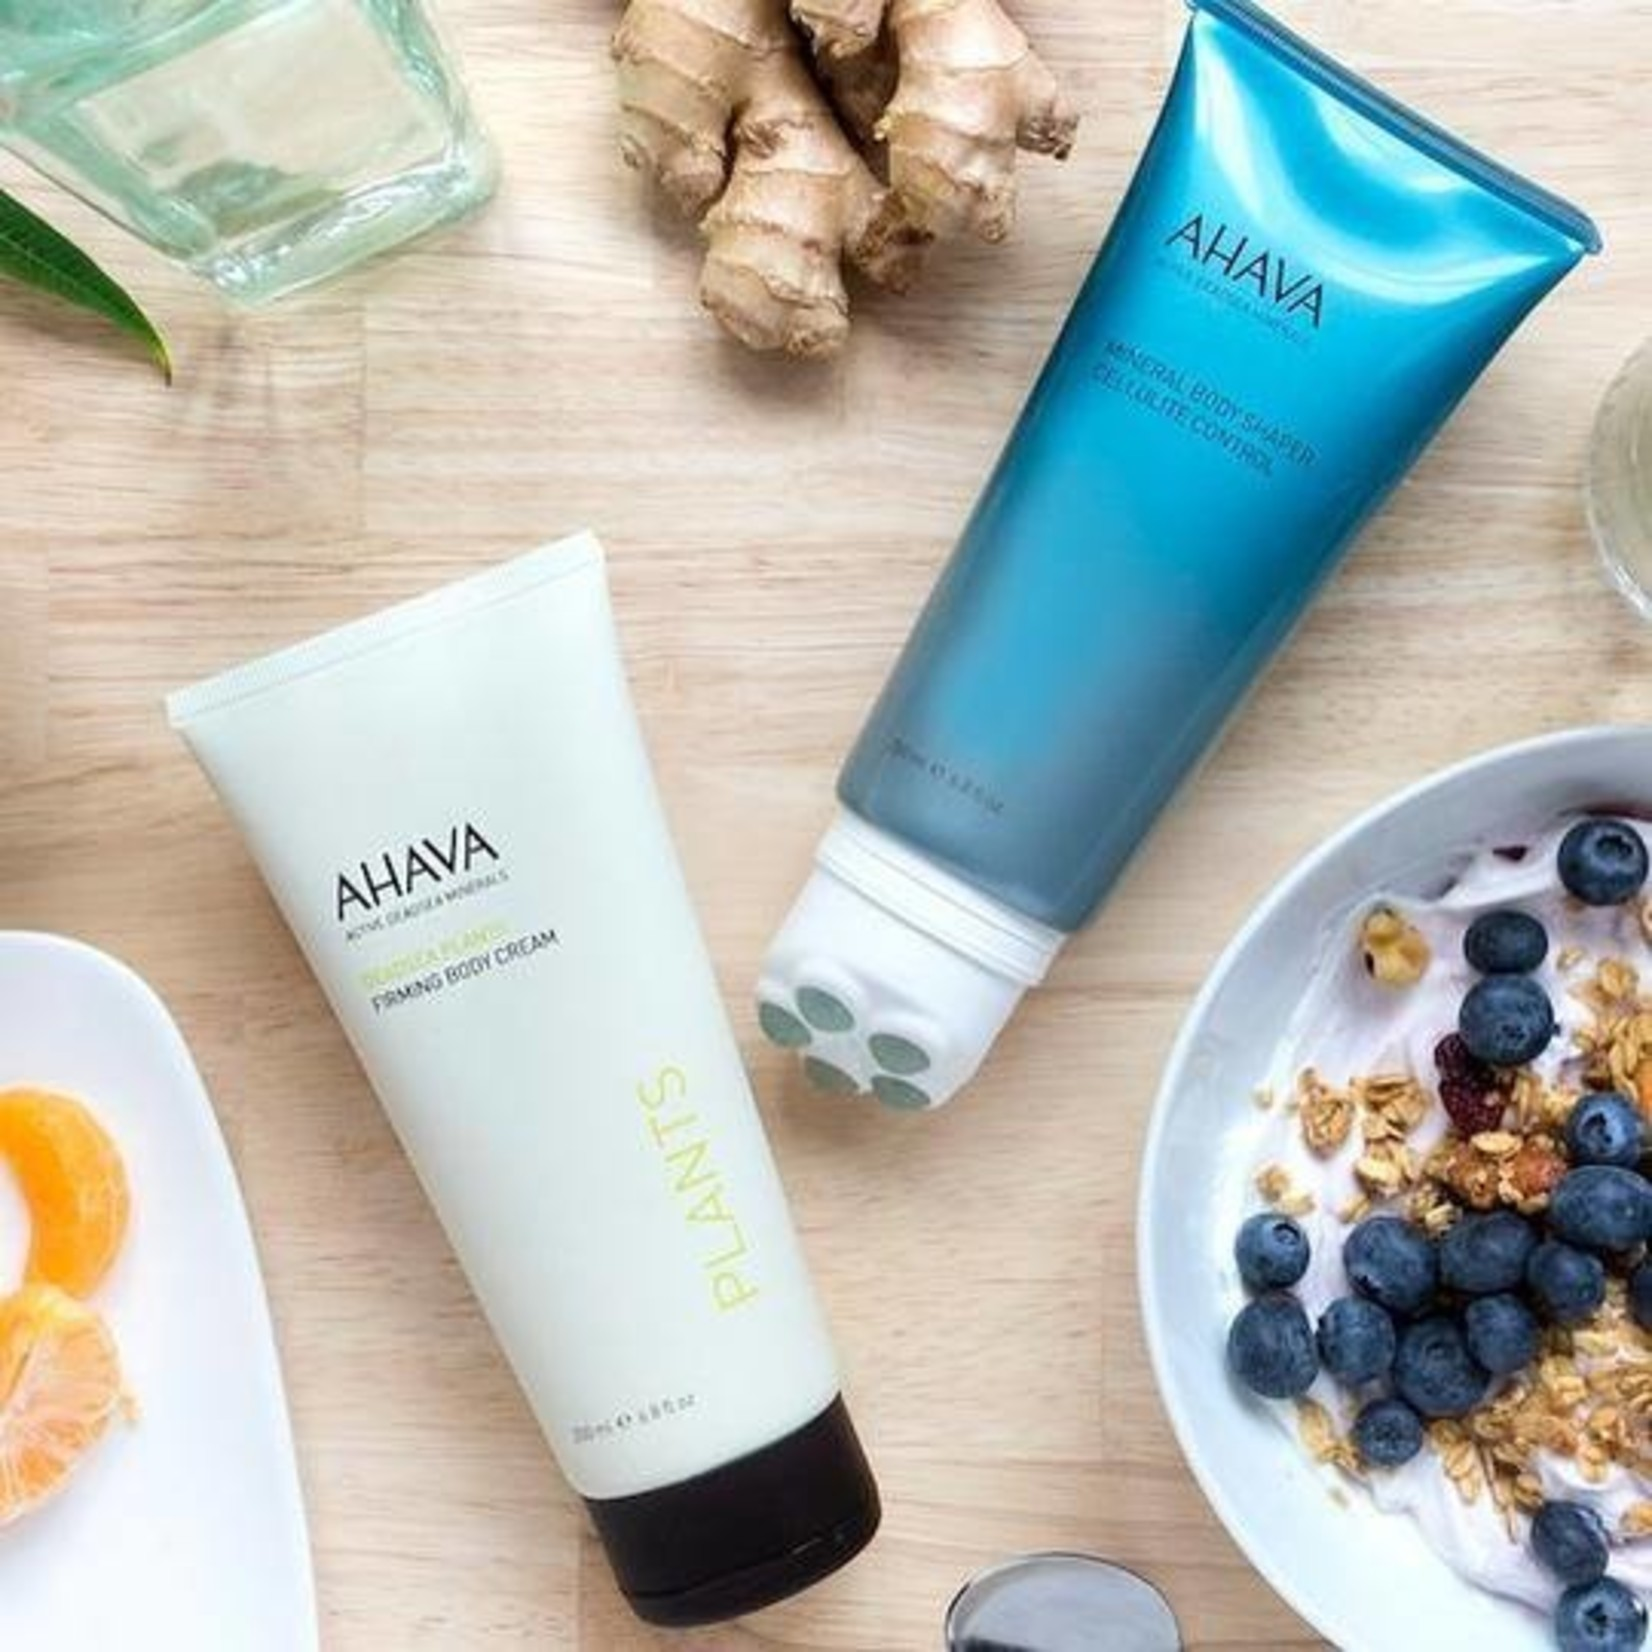 AHAVA firming body cream 200ml